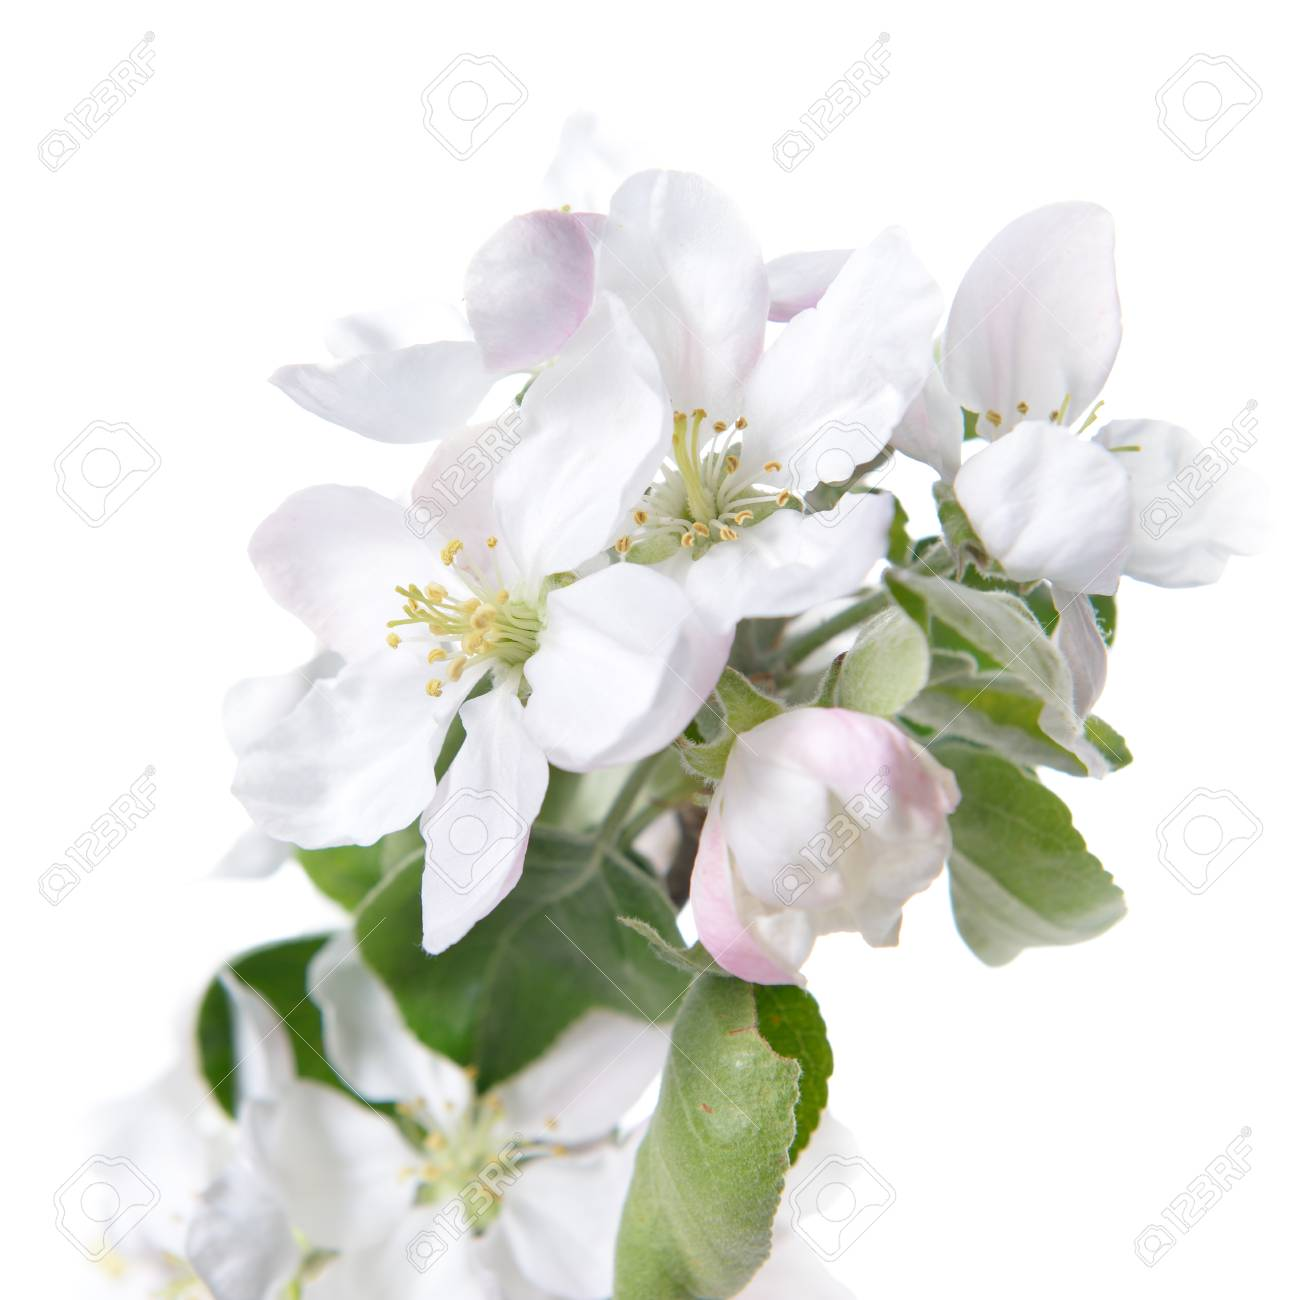 Apple Blossoms Blooming Apple Tree Branch With Large White Flowers